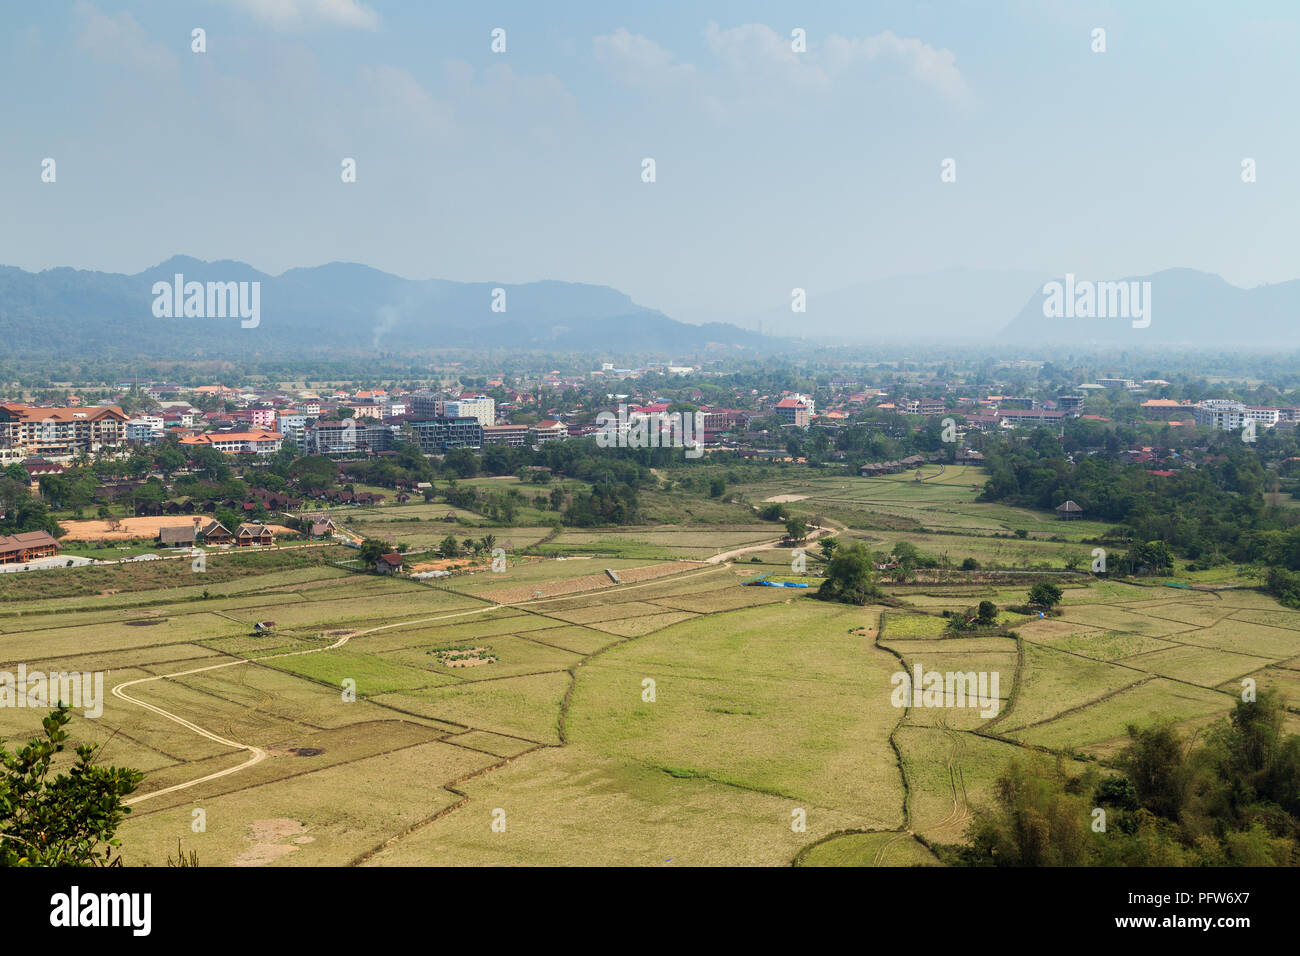 Beautiful view of town and fields from above in Vang Vieng, Vientiane Province, Laos, on a sunny day. - Stock Image